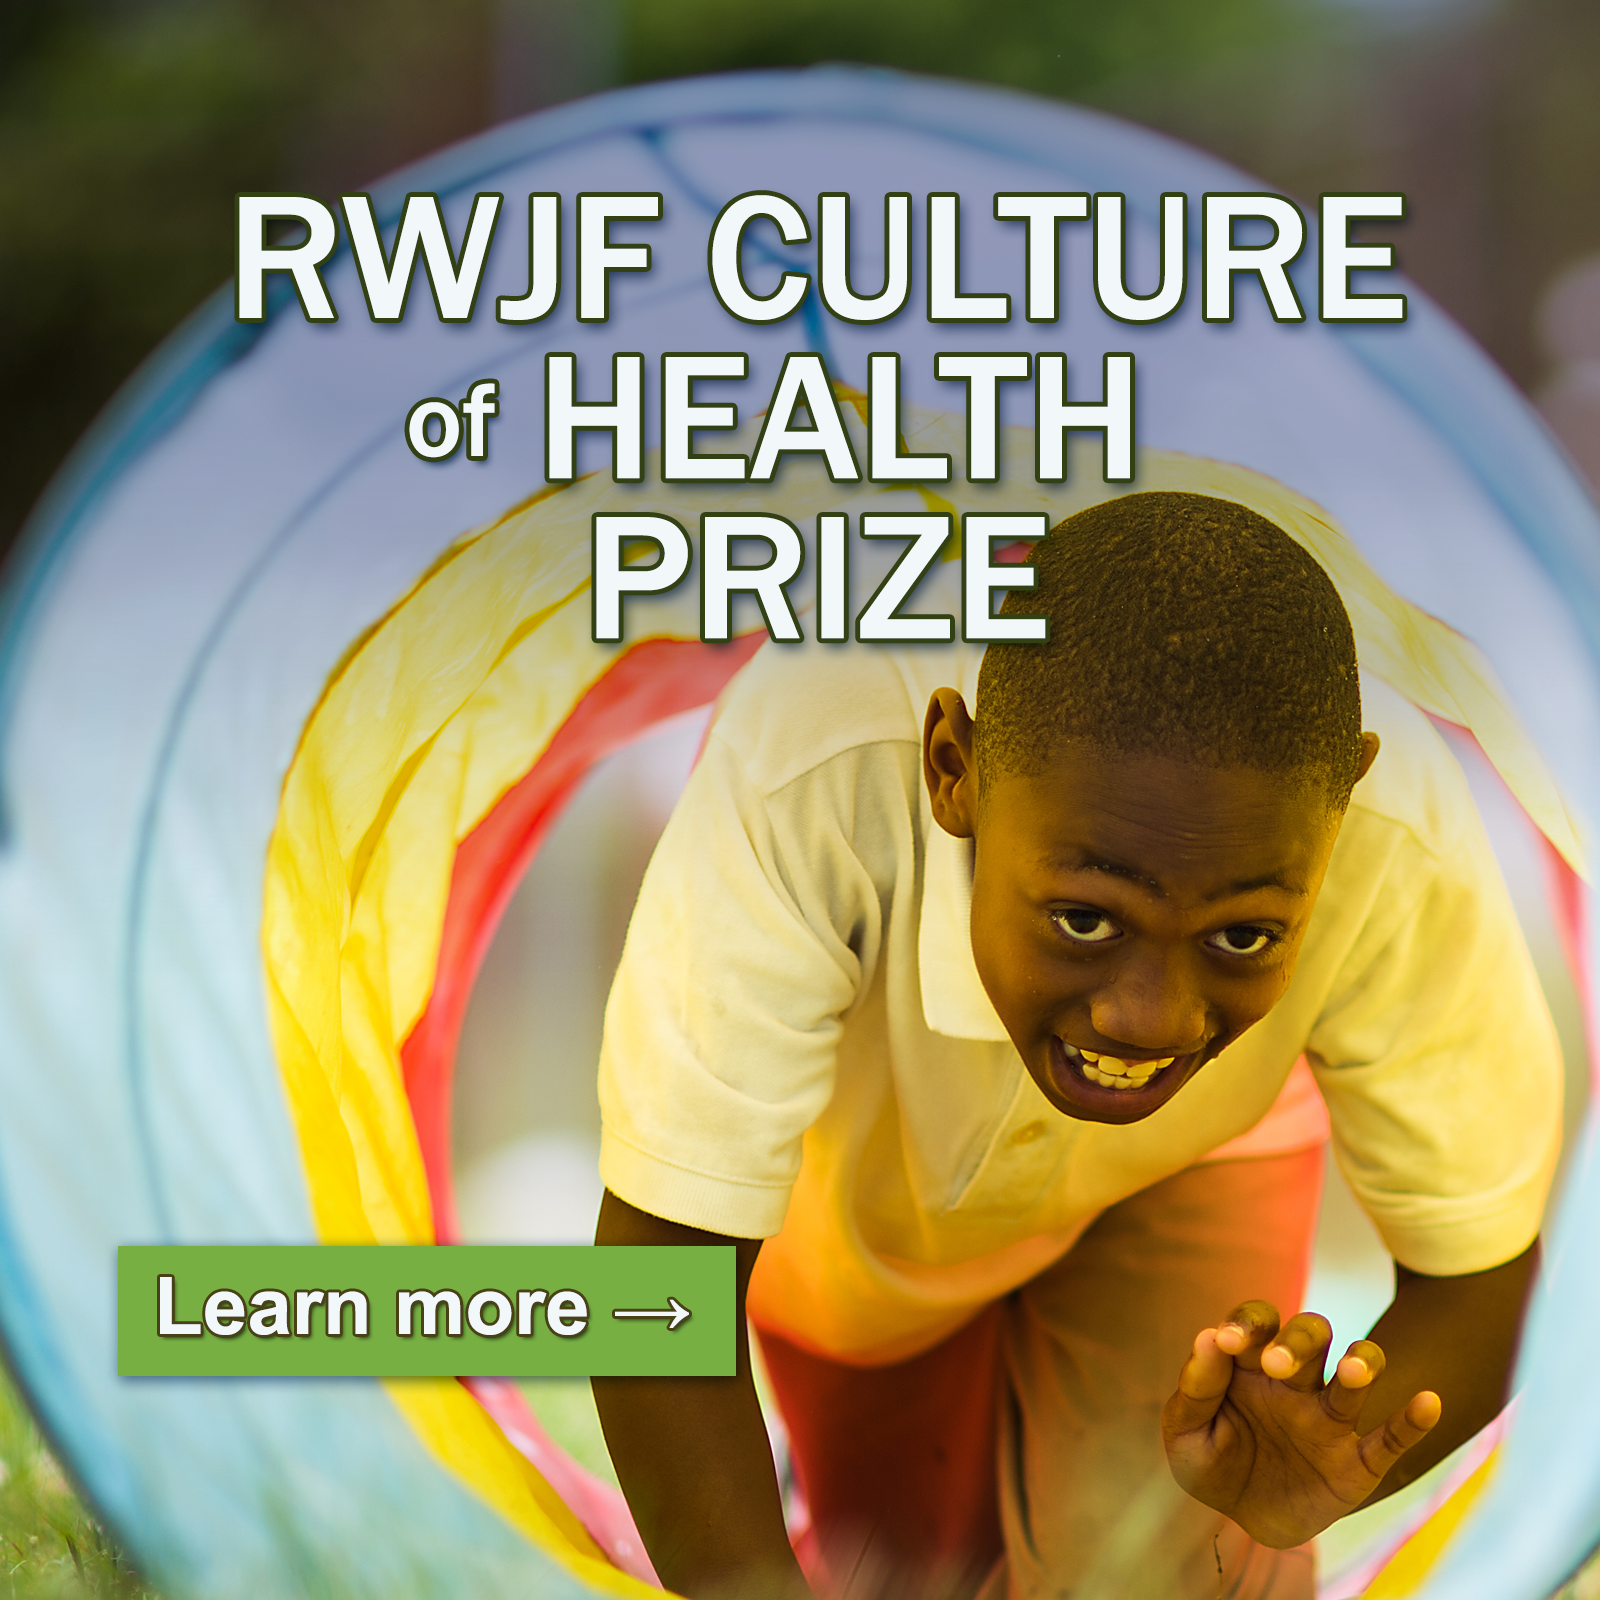 Learn more about the RWJF Culture of Health Prize.